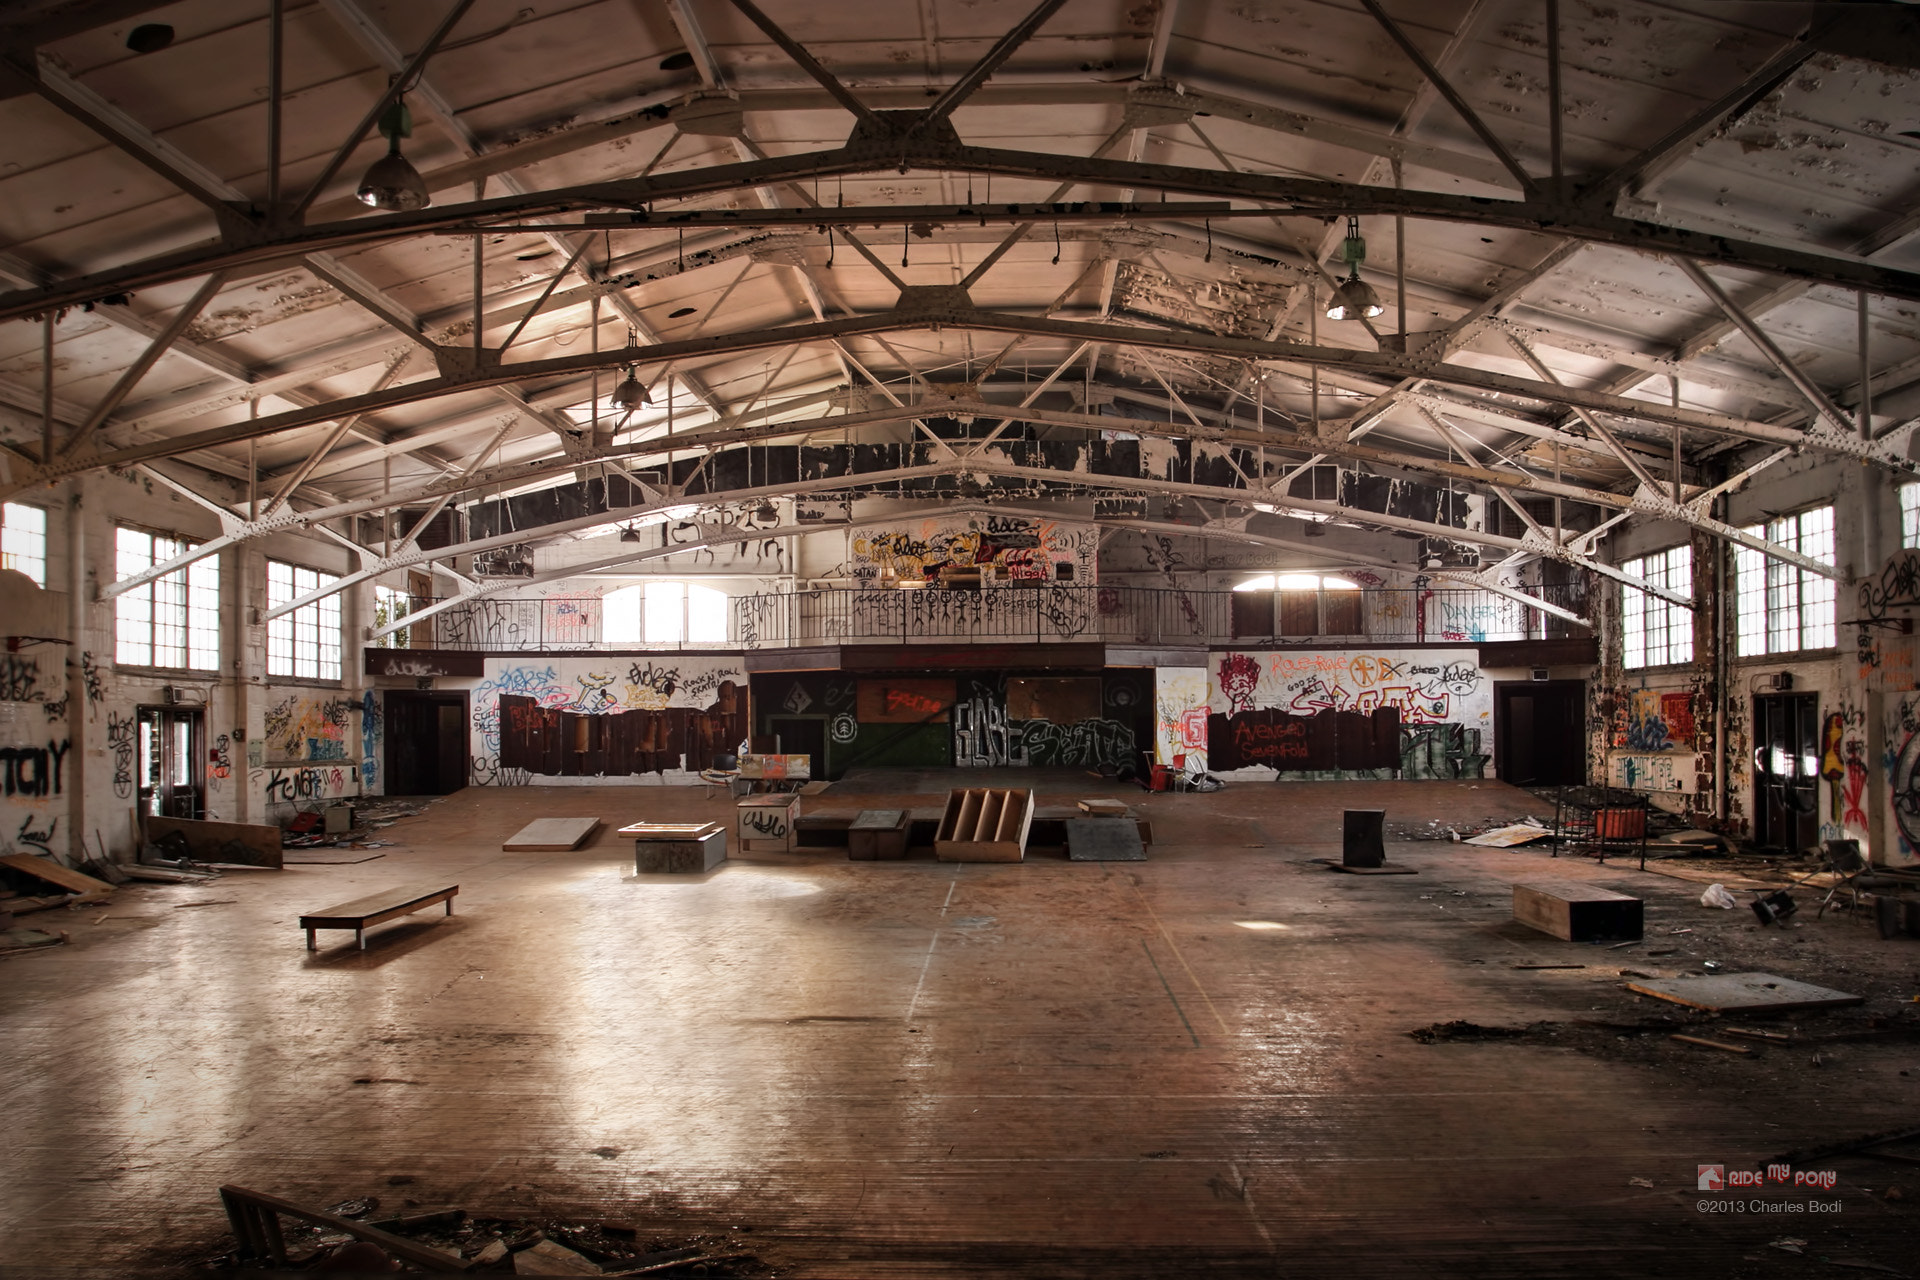 Photograph Gym by Charles Bodi on 500px